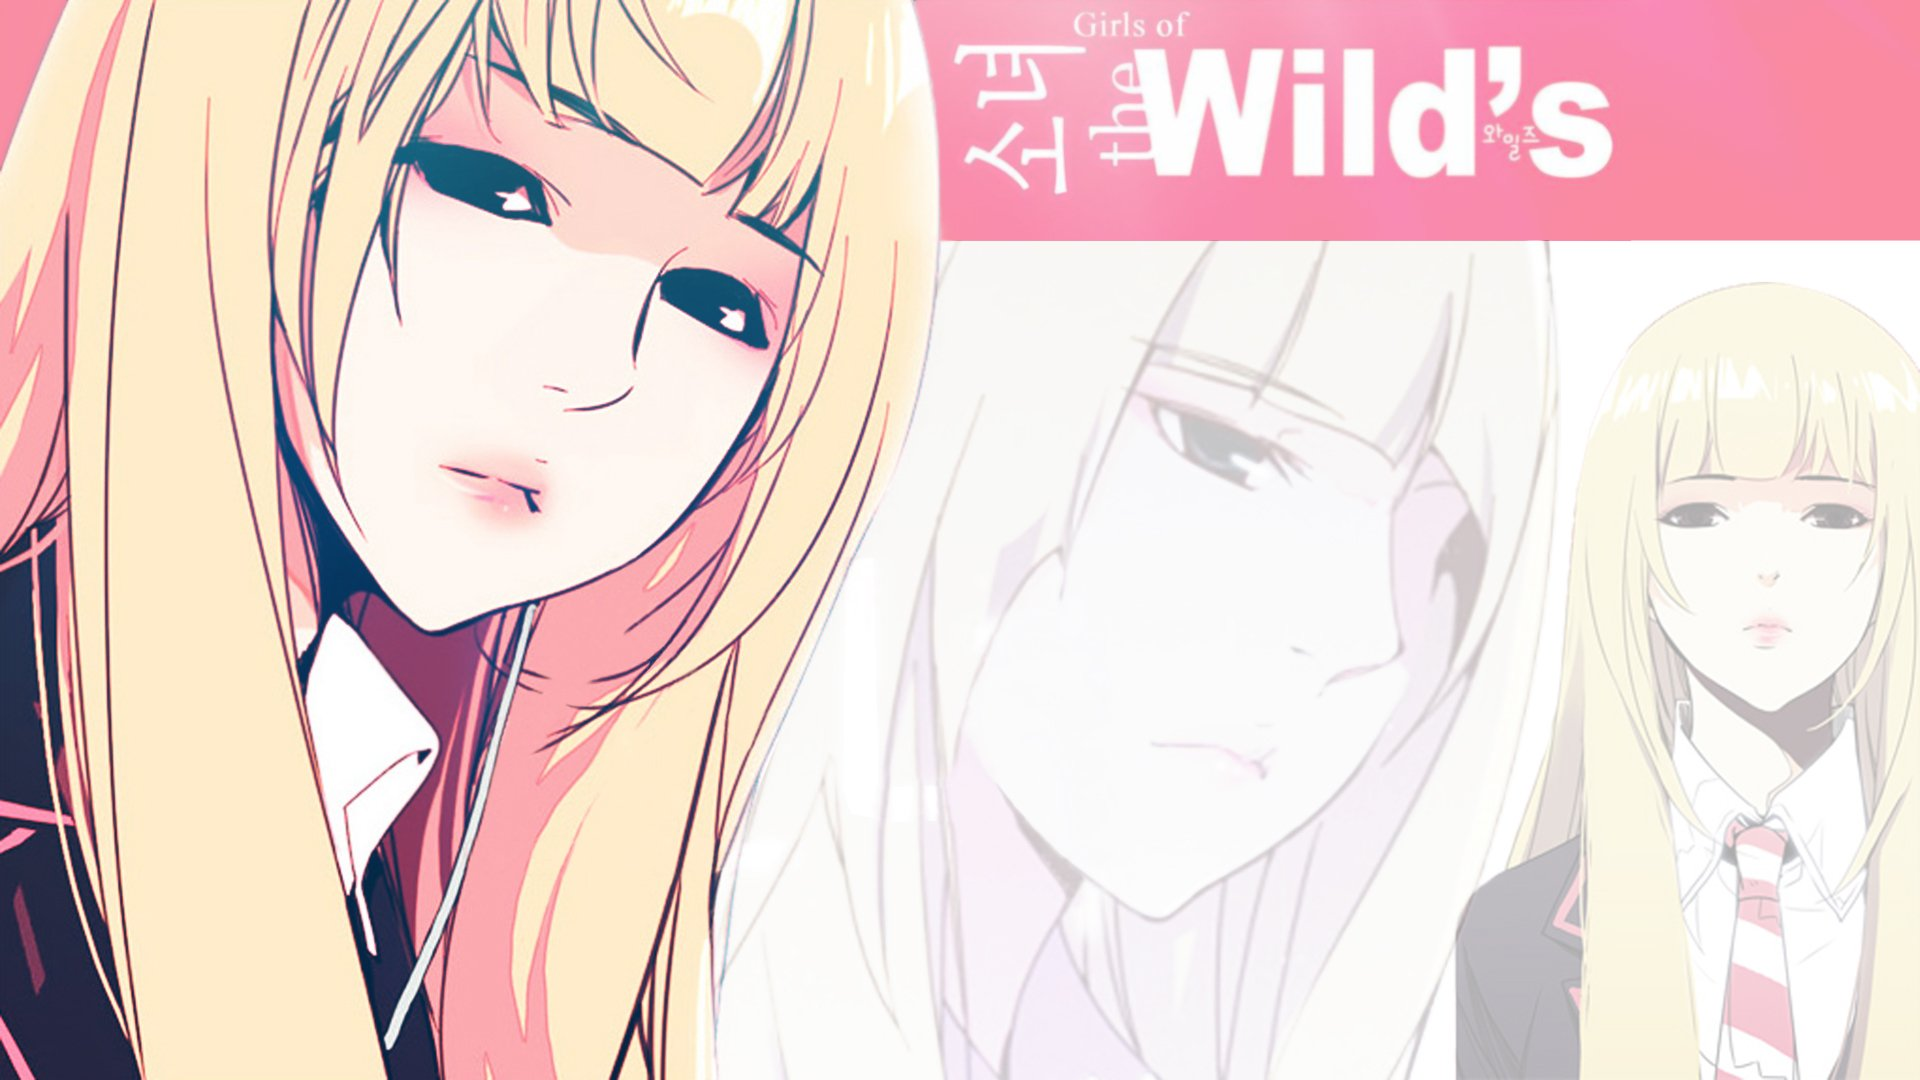 2 Girls Of The Wild S Hd Wallpapers Background Images